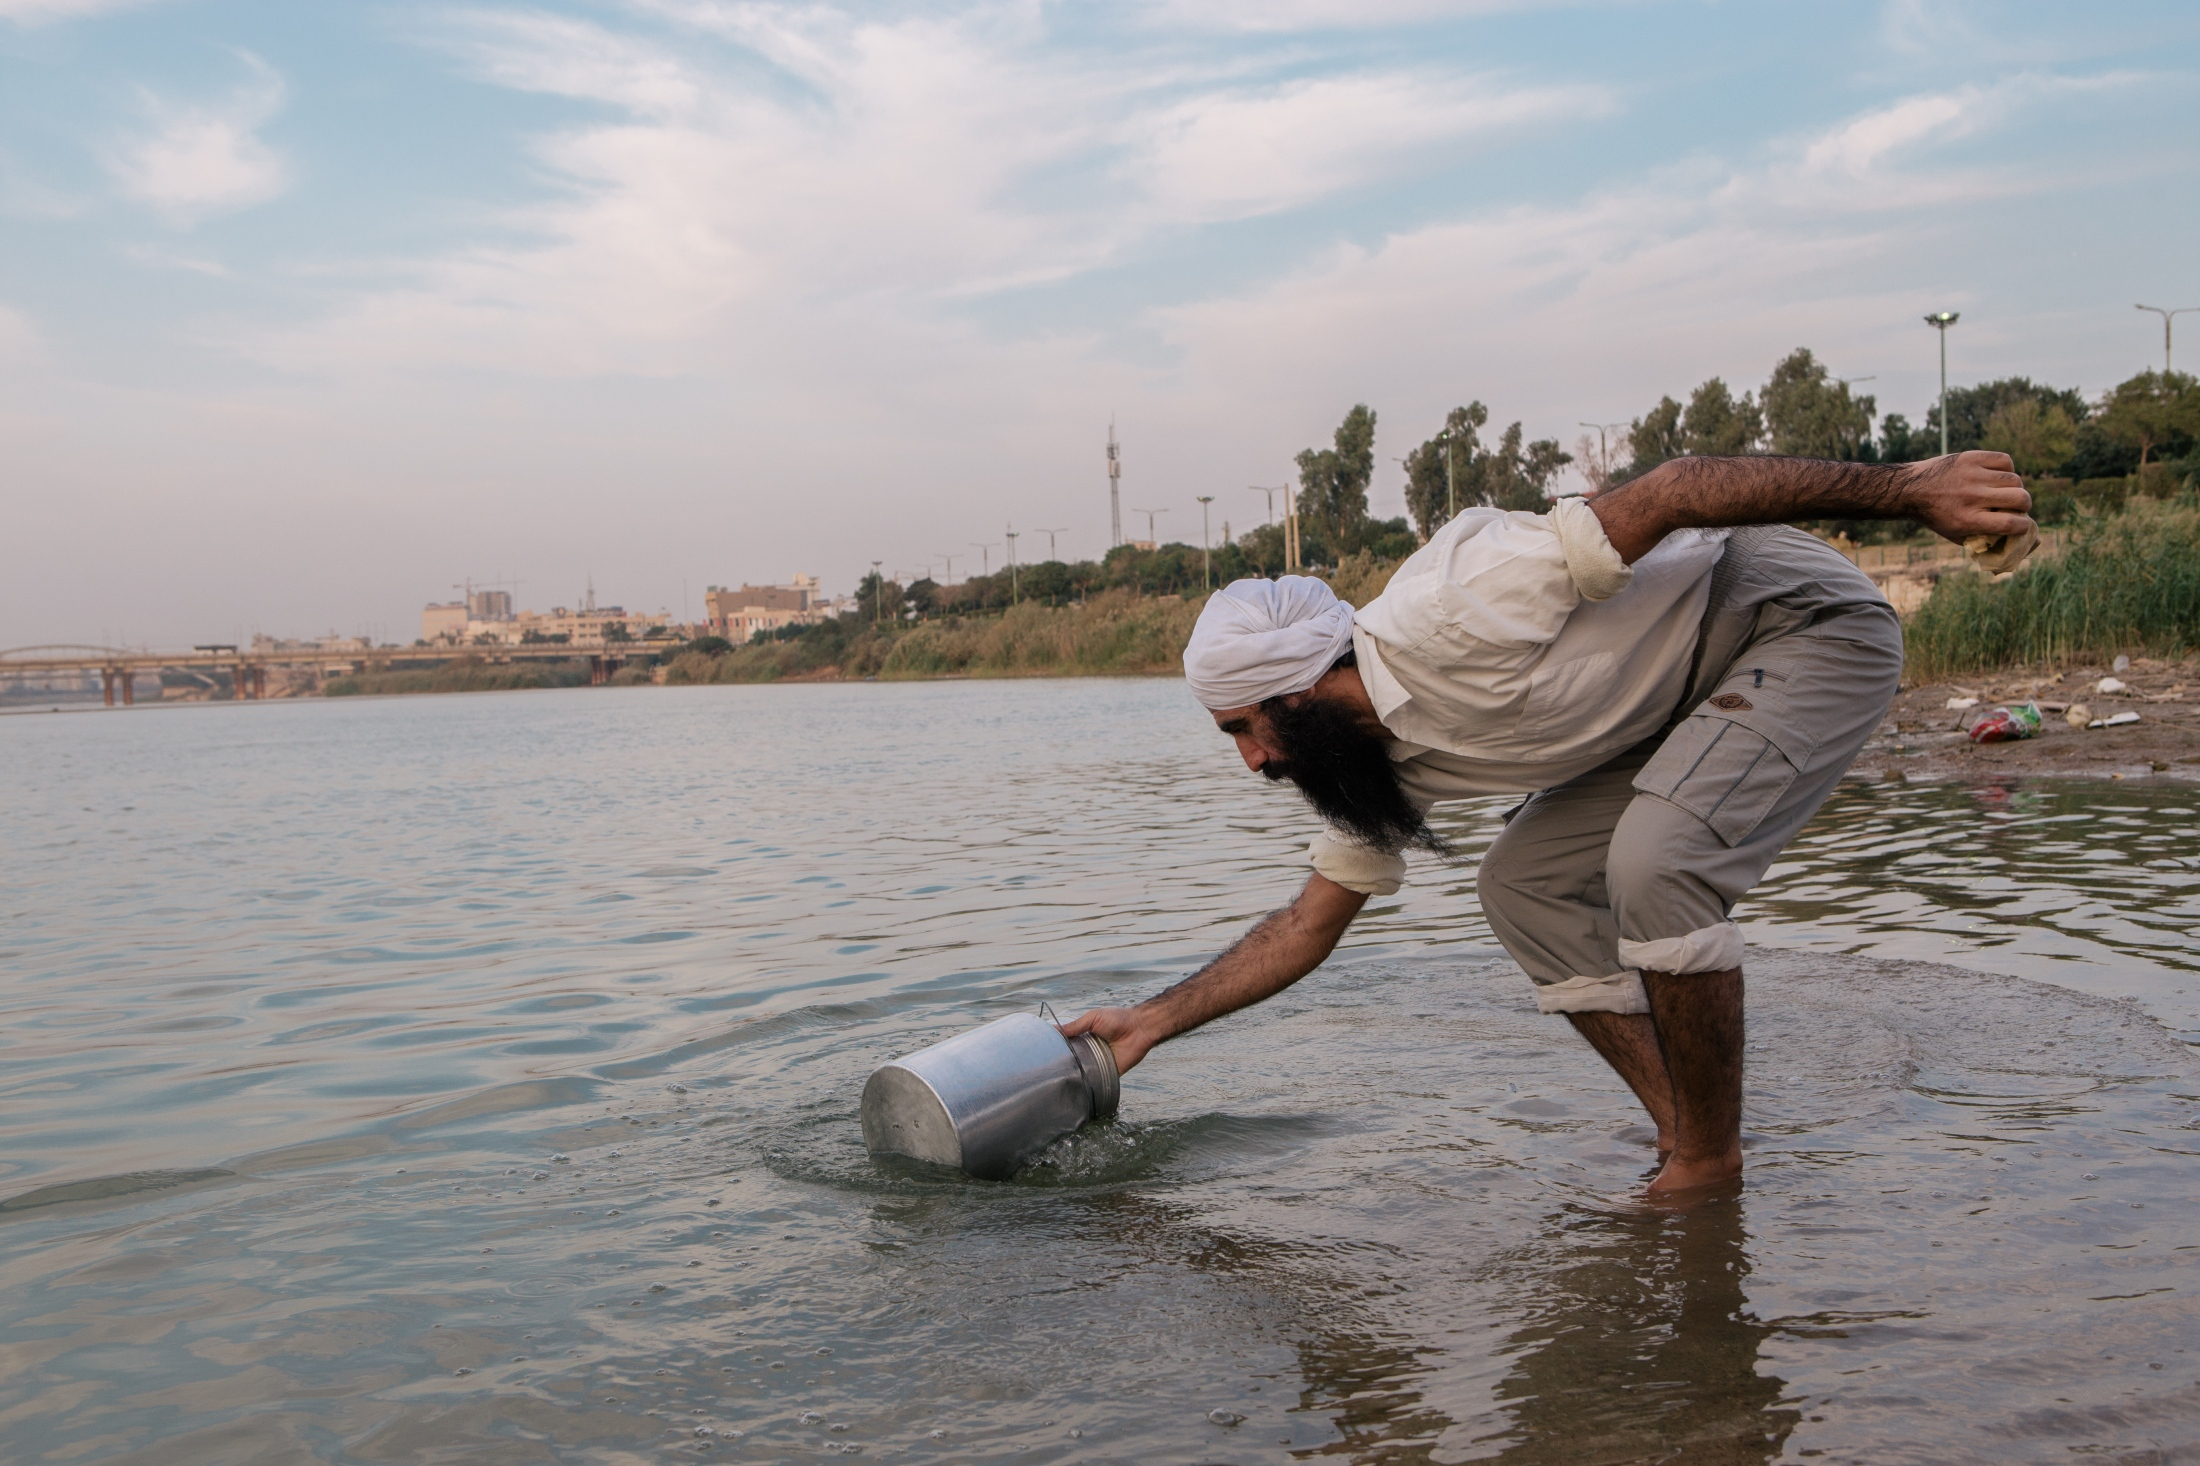 A Tarmida – the second rank of Mandaean priesthood – stands ankle-deep in the water and uses an Aluminum pail to bail the water directly from the river. He will return home and boil the water, not as a means of purifying it, but rather, to separate the sediment. He drinks the water daily.  younger adherents avoid the weekly baptisms and reserve that close interaction with the water for the more significant occasions, like baptism rites after marriage. Siamak, a young Mandaean man, said he had become ill after drinking the water from the river during a religious ceremony.  September 2016